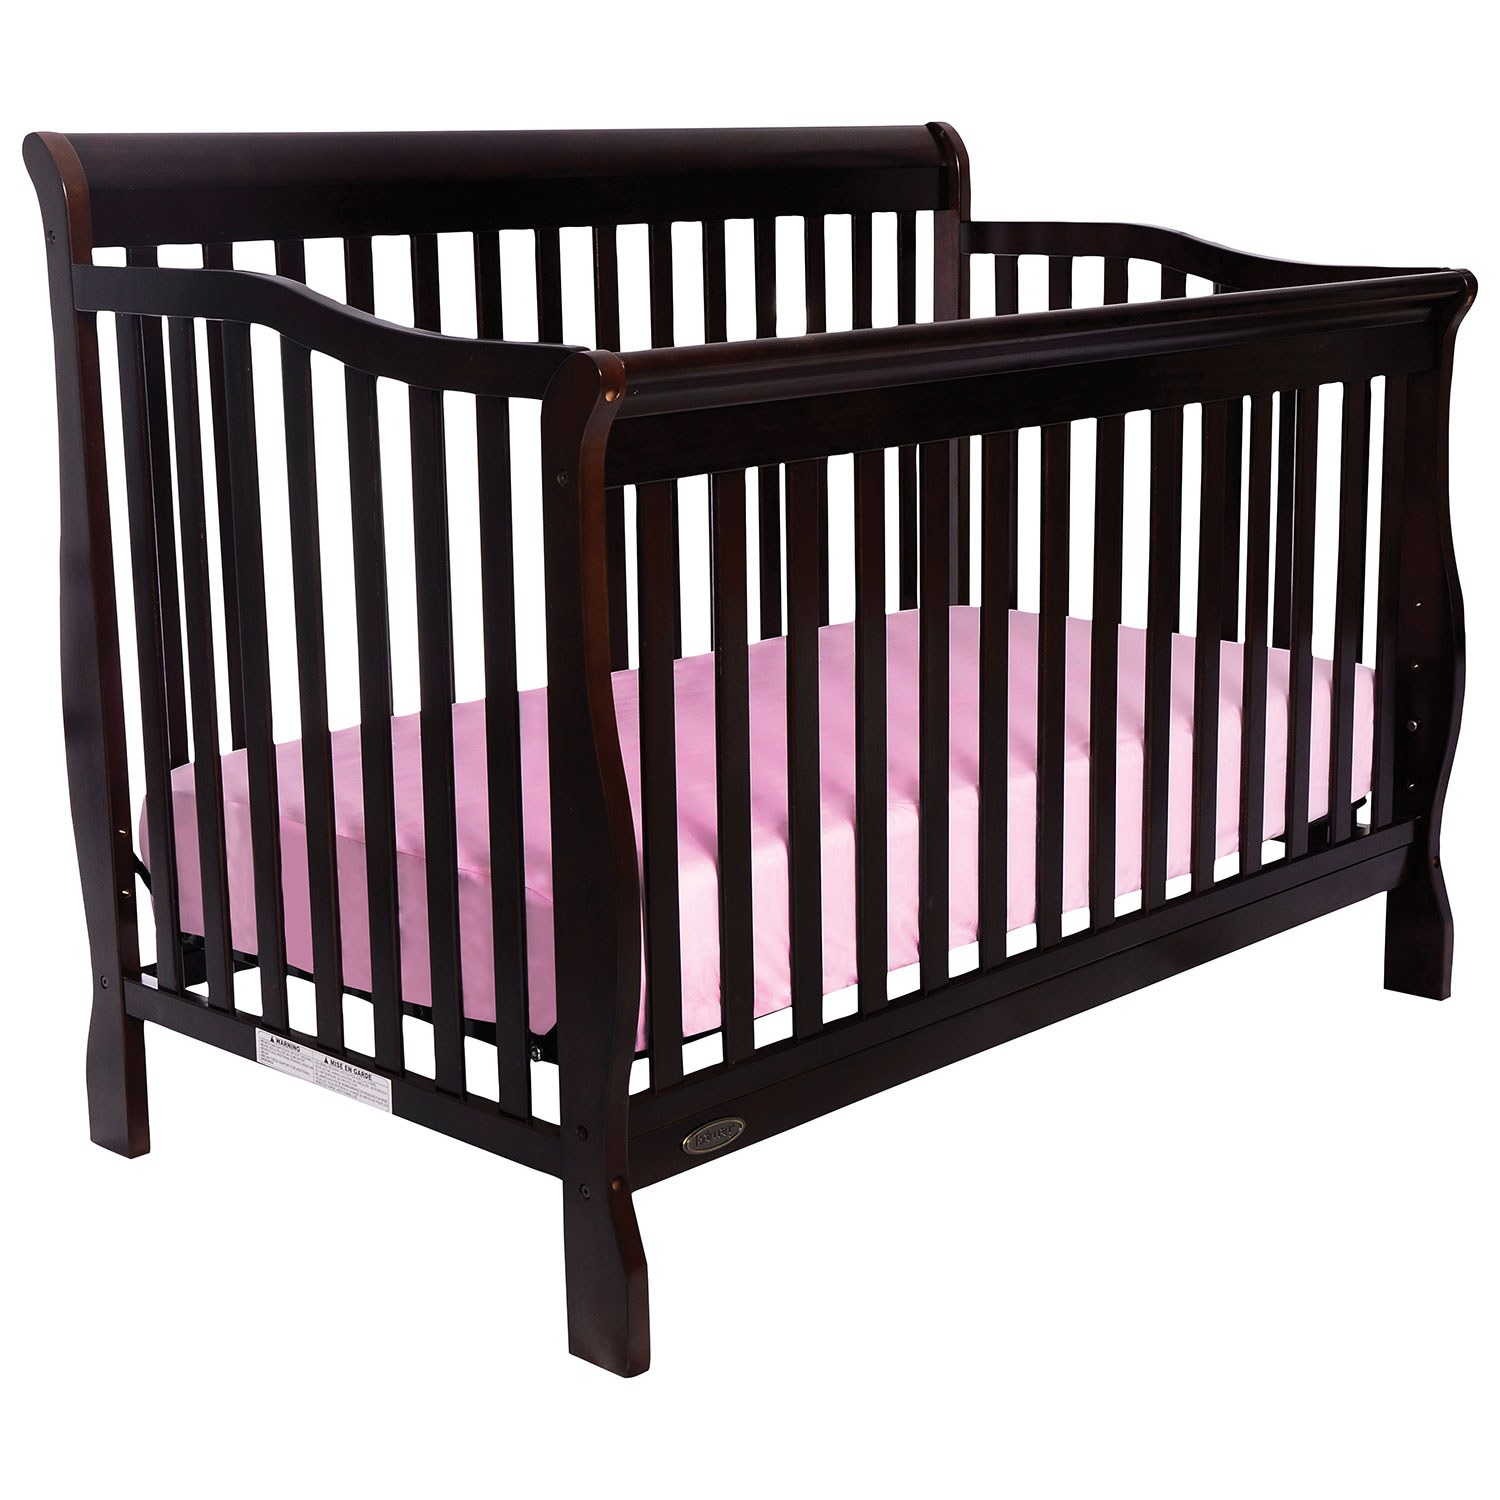 Crib for sale kelowna - Kidiway Santa Maria 4 In 1 Convertible Crib Espresso